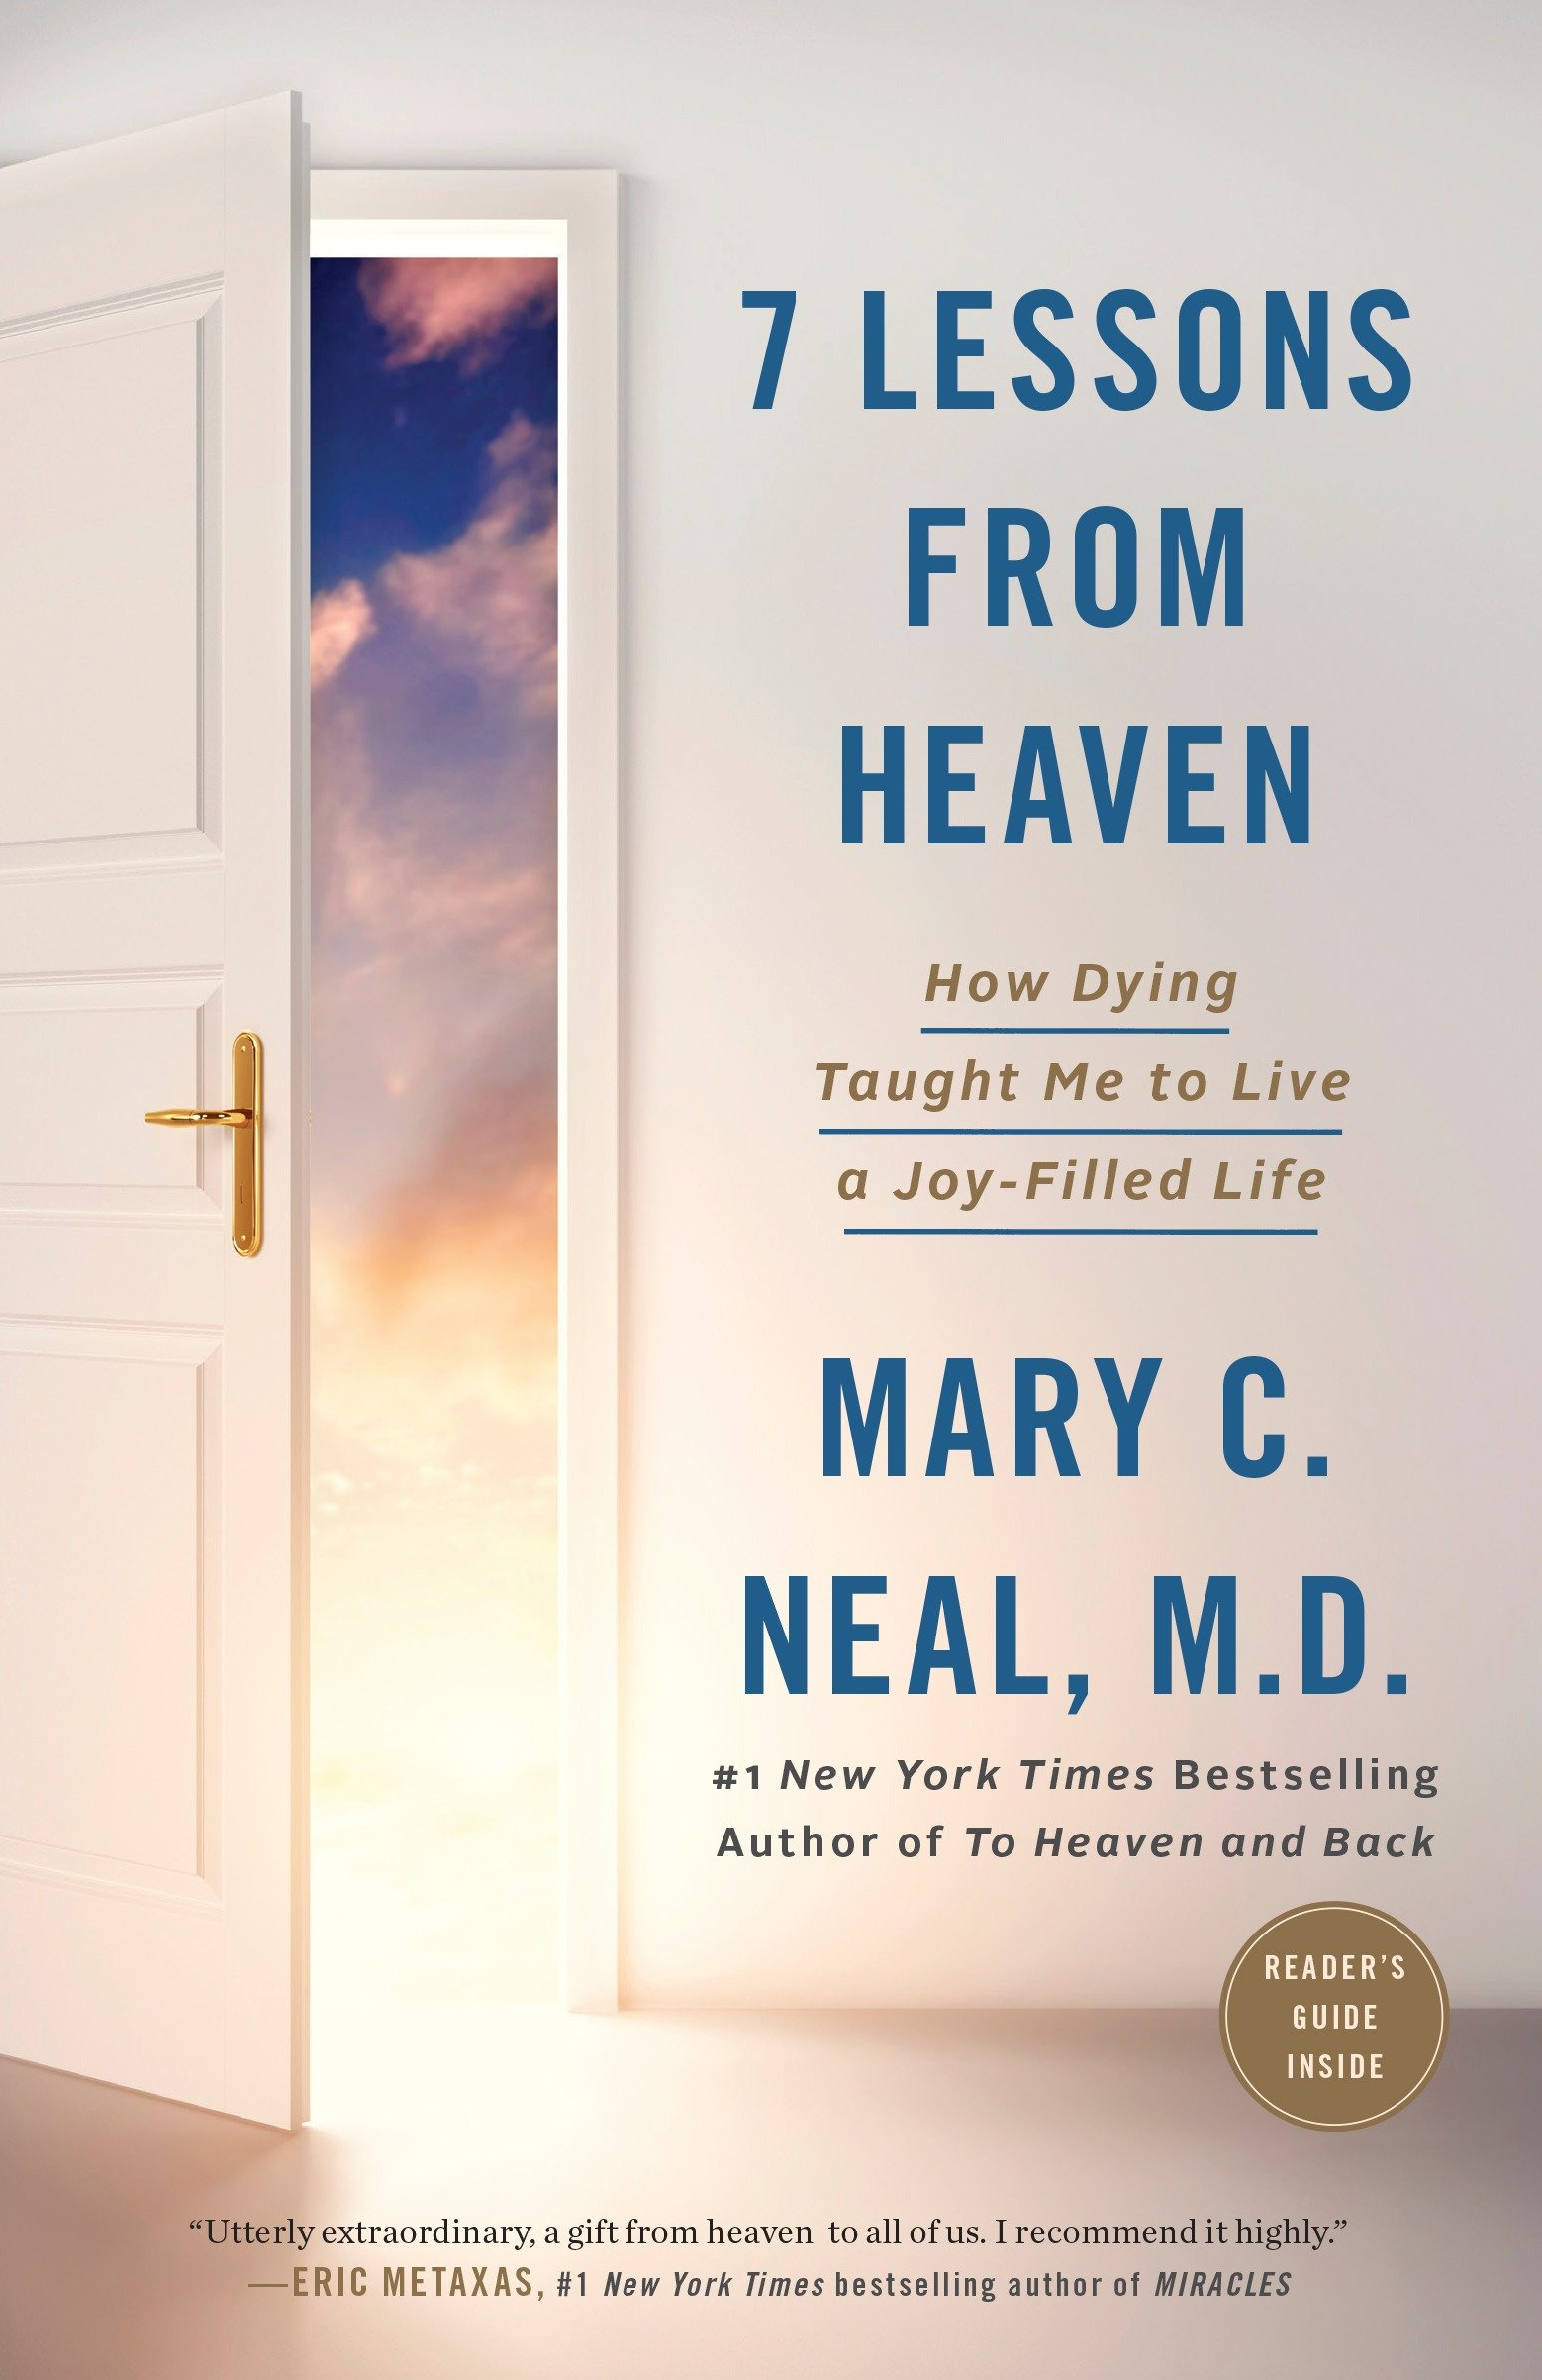 7 Lessons from Heaven How Dying Taught Me to Live a Joy-Filled Life